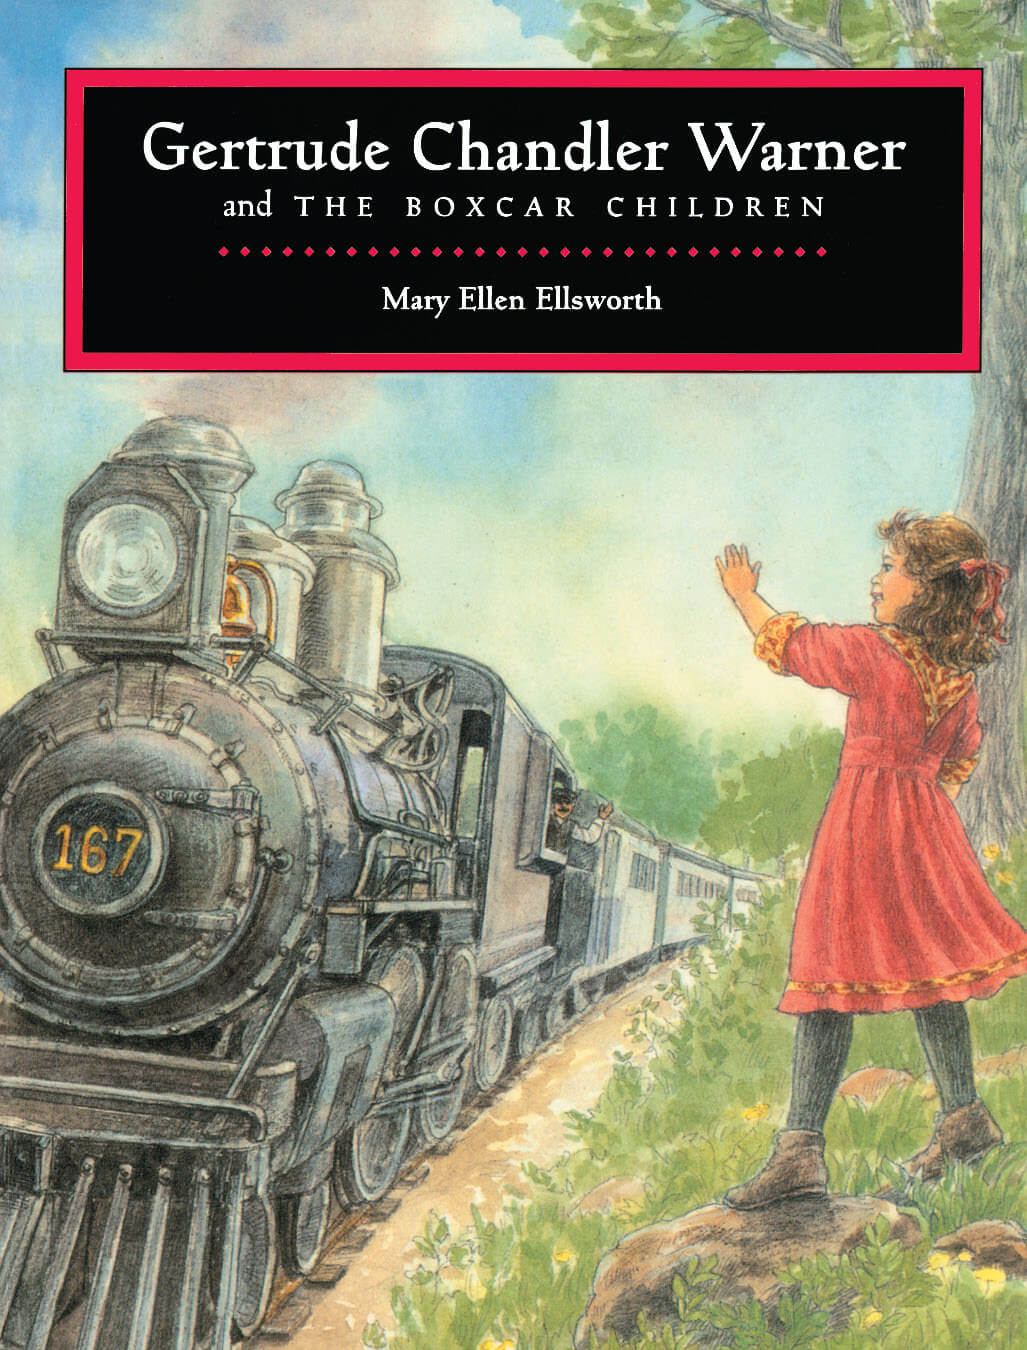 boxcar children The boxcar children isbn-10: 0807508527 isbn-13: 9780807508527 author:  warner, gertrude chandler illustrated by: deal, l kate interest level: 2-5.